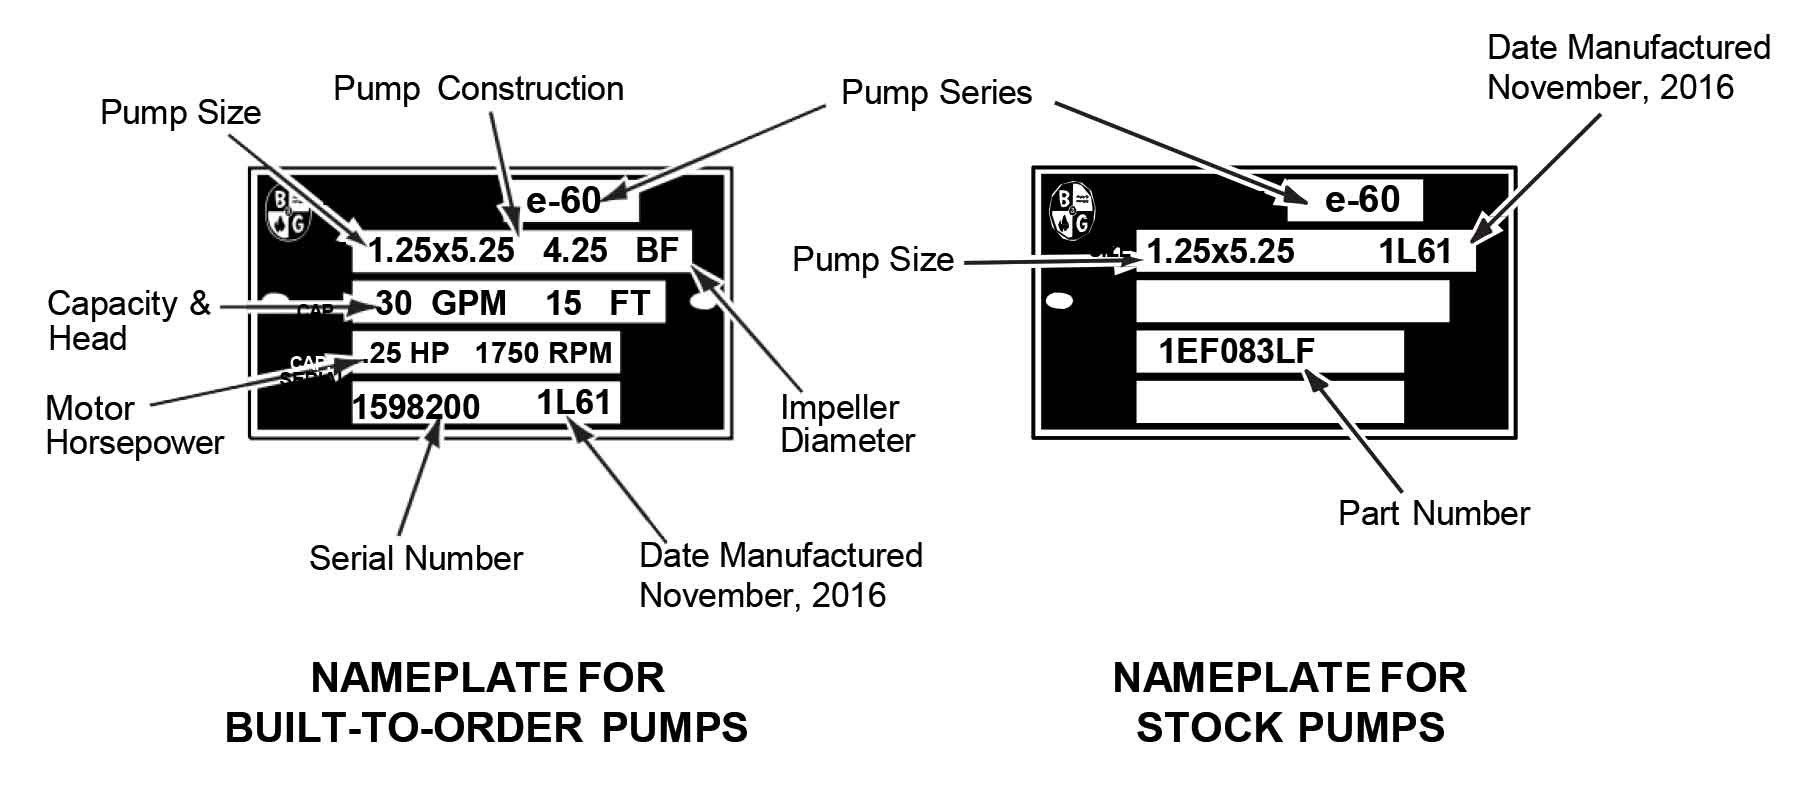 Bell & Gossett Series e-60 In-Line Centrifugal Pumps